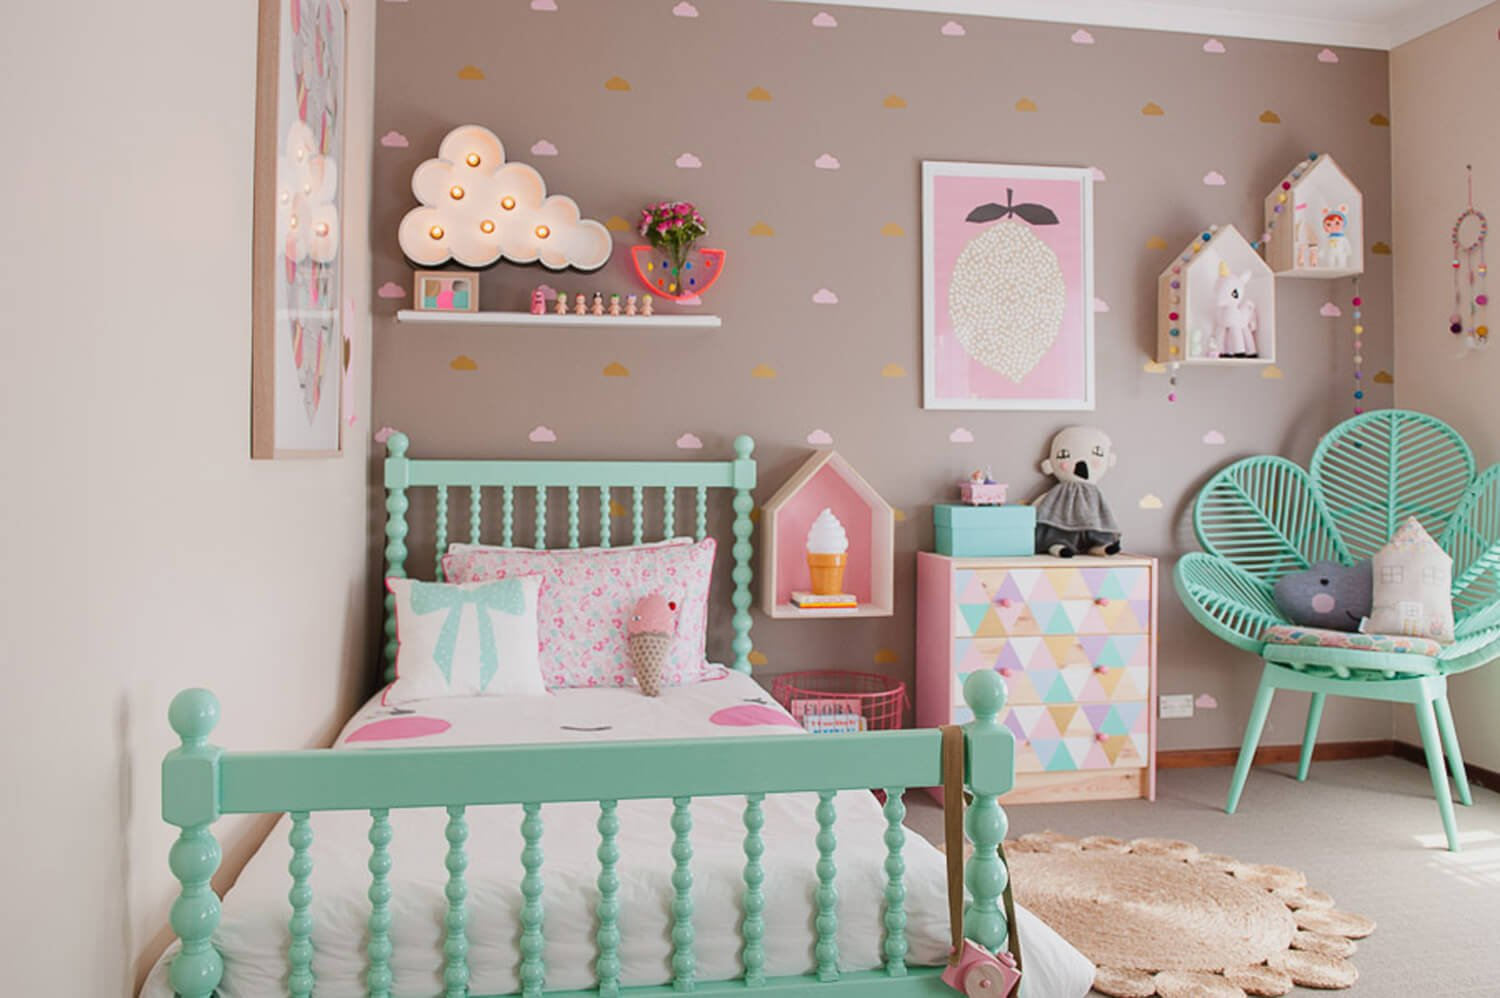 . 27 Kids Bedrooms Ideas That ll Let Them Explore Their Creativity